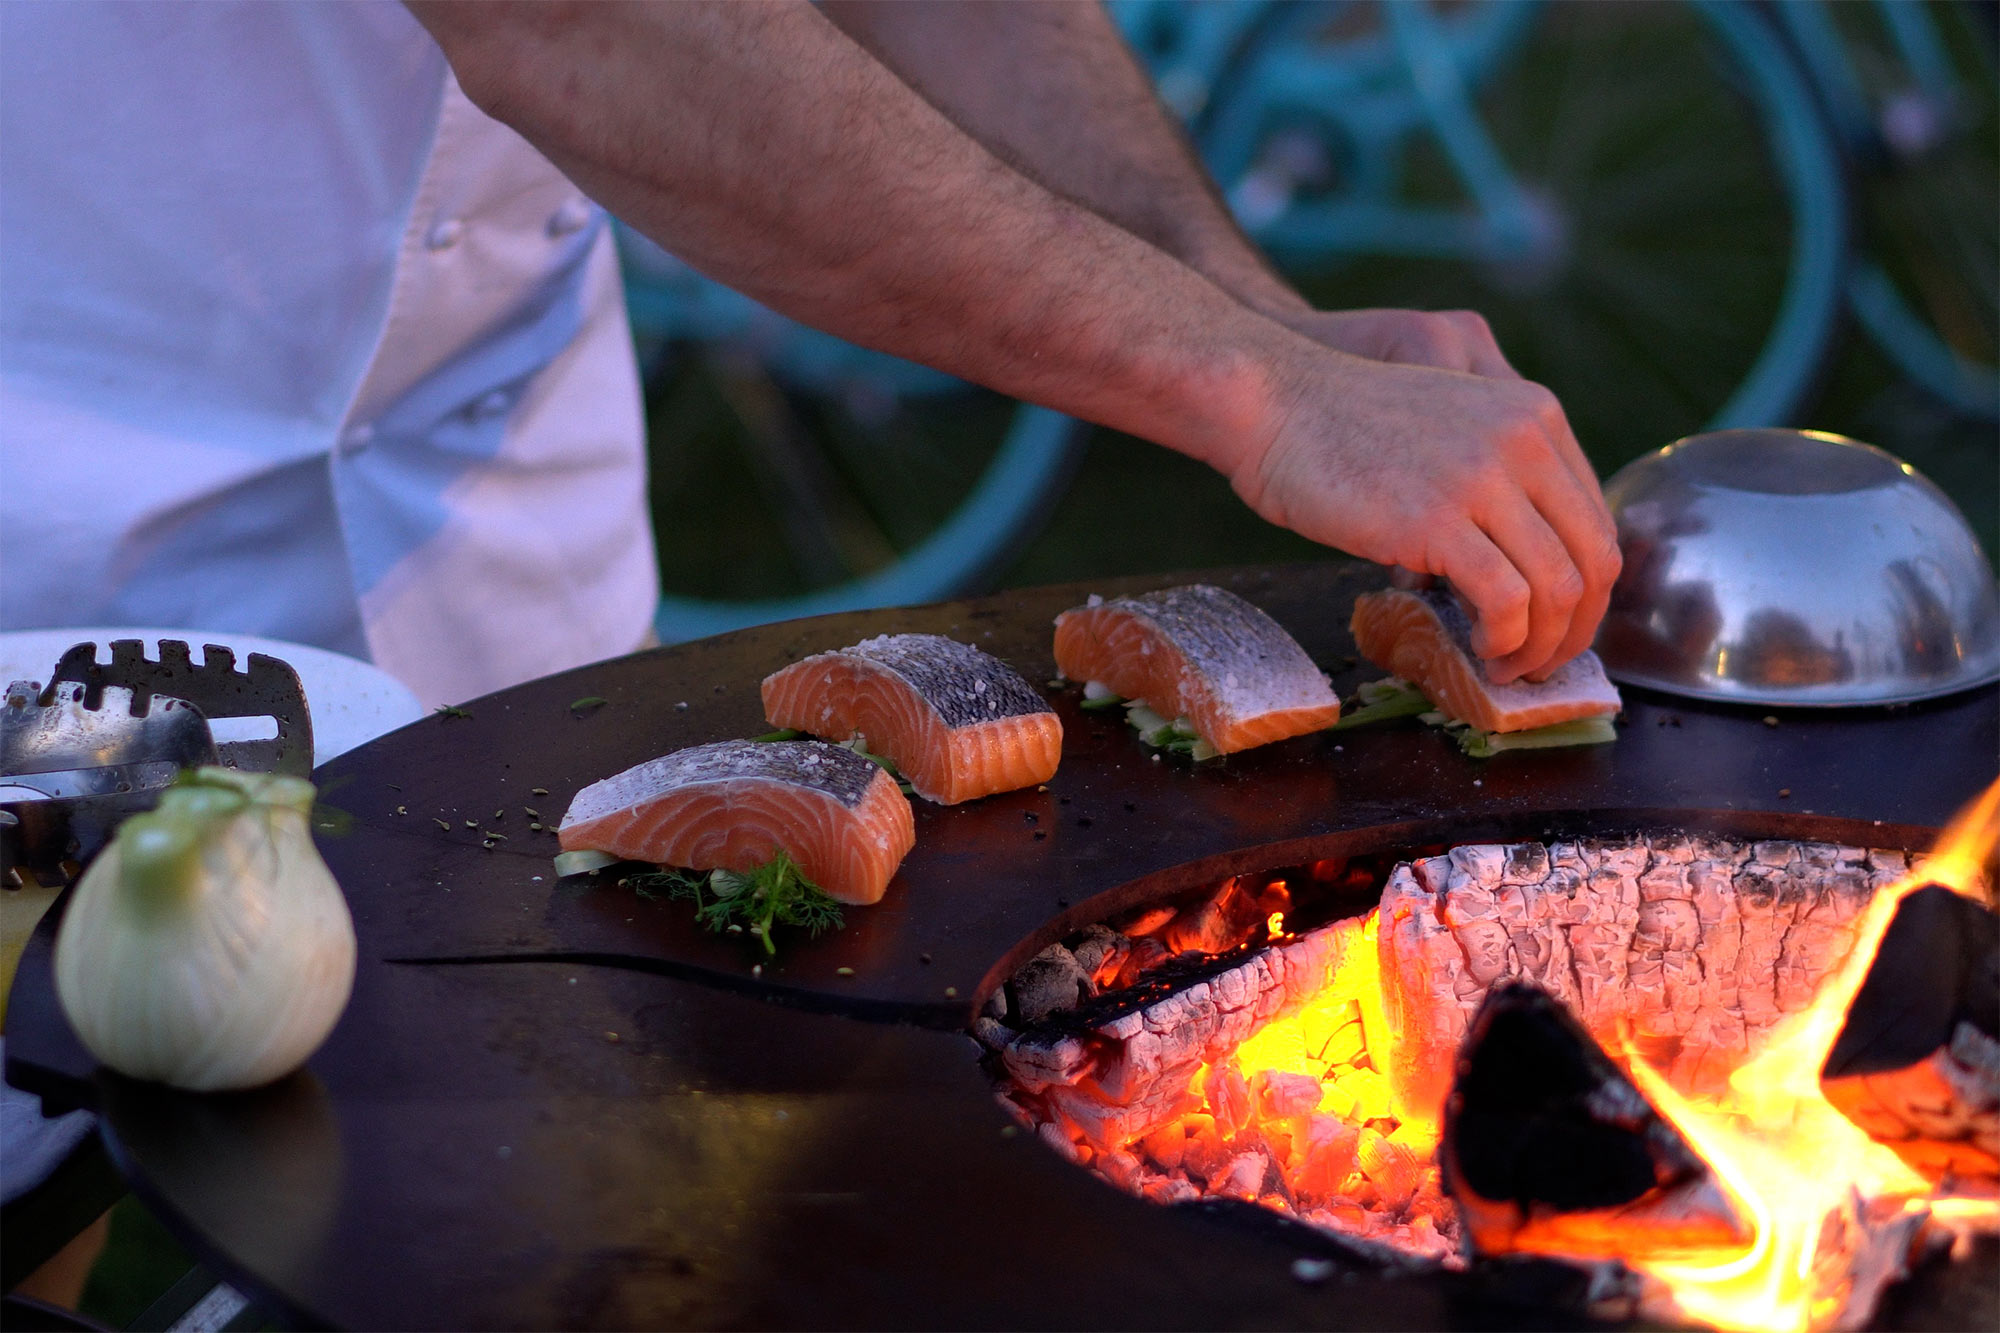 Chef cooking salmon on a chef's Anvil hotplate